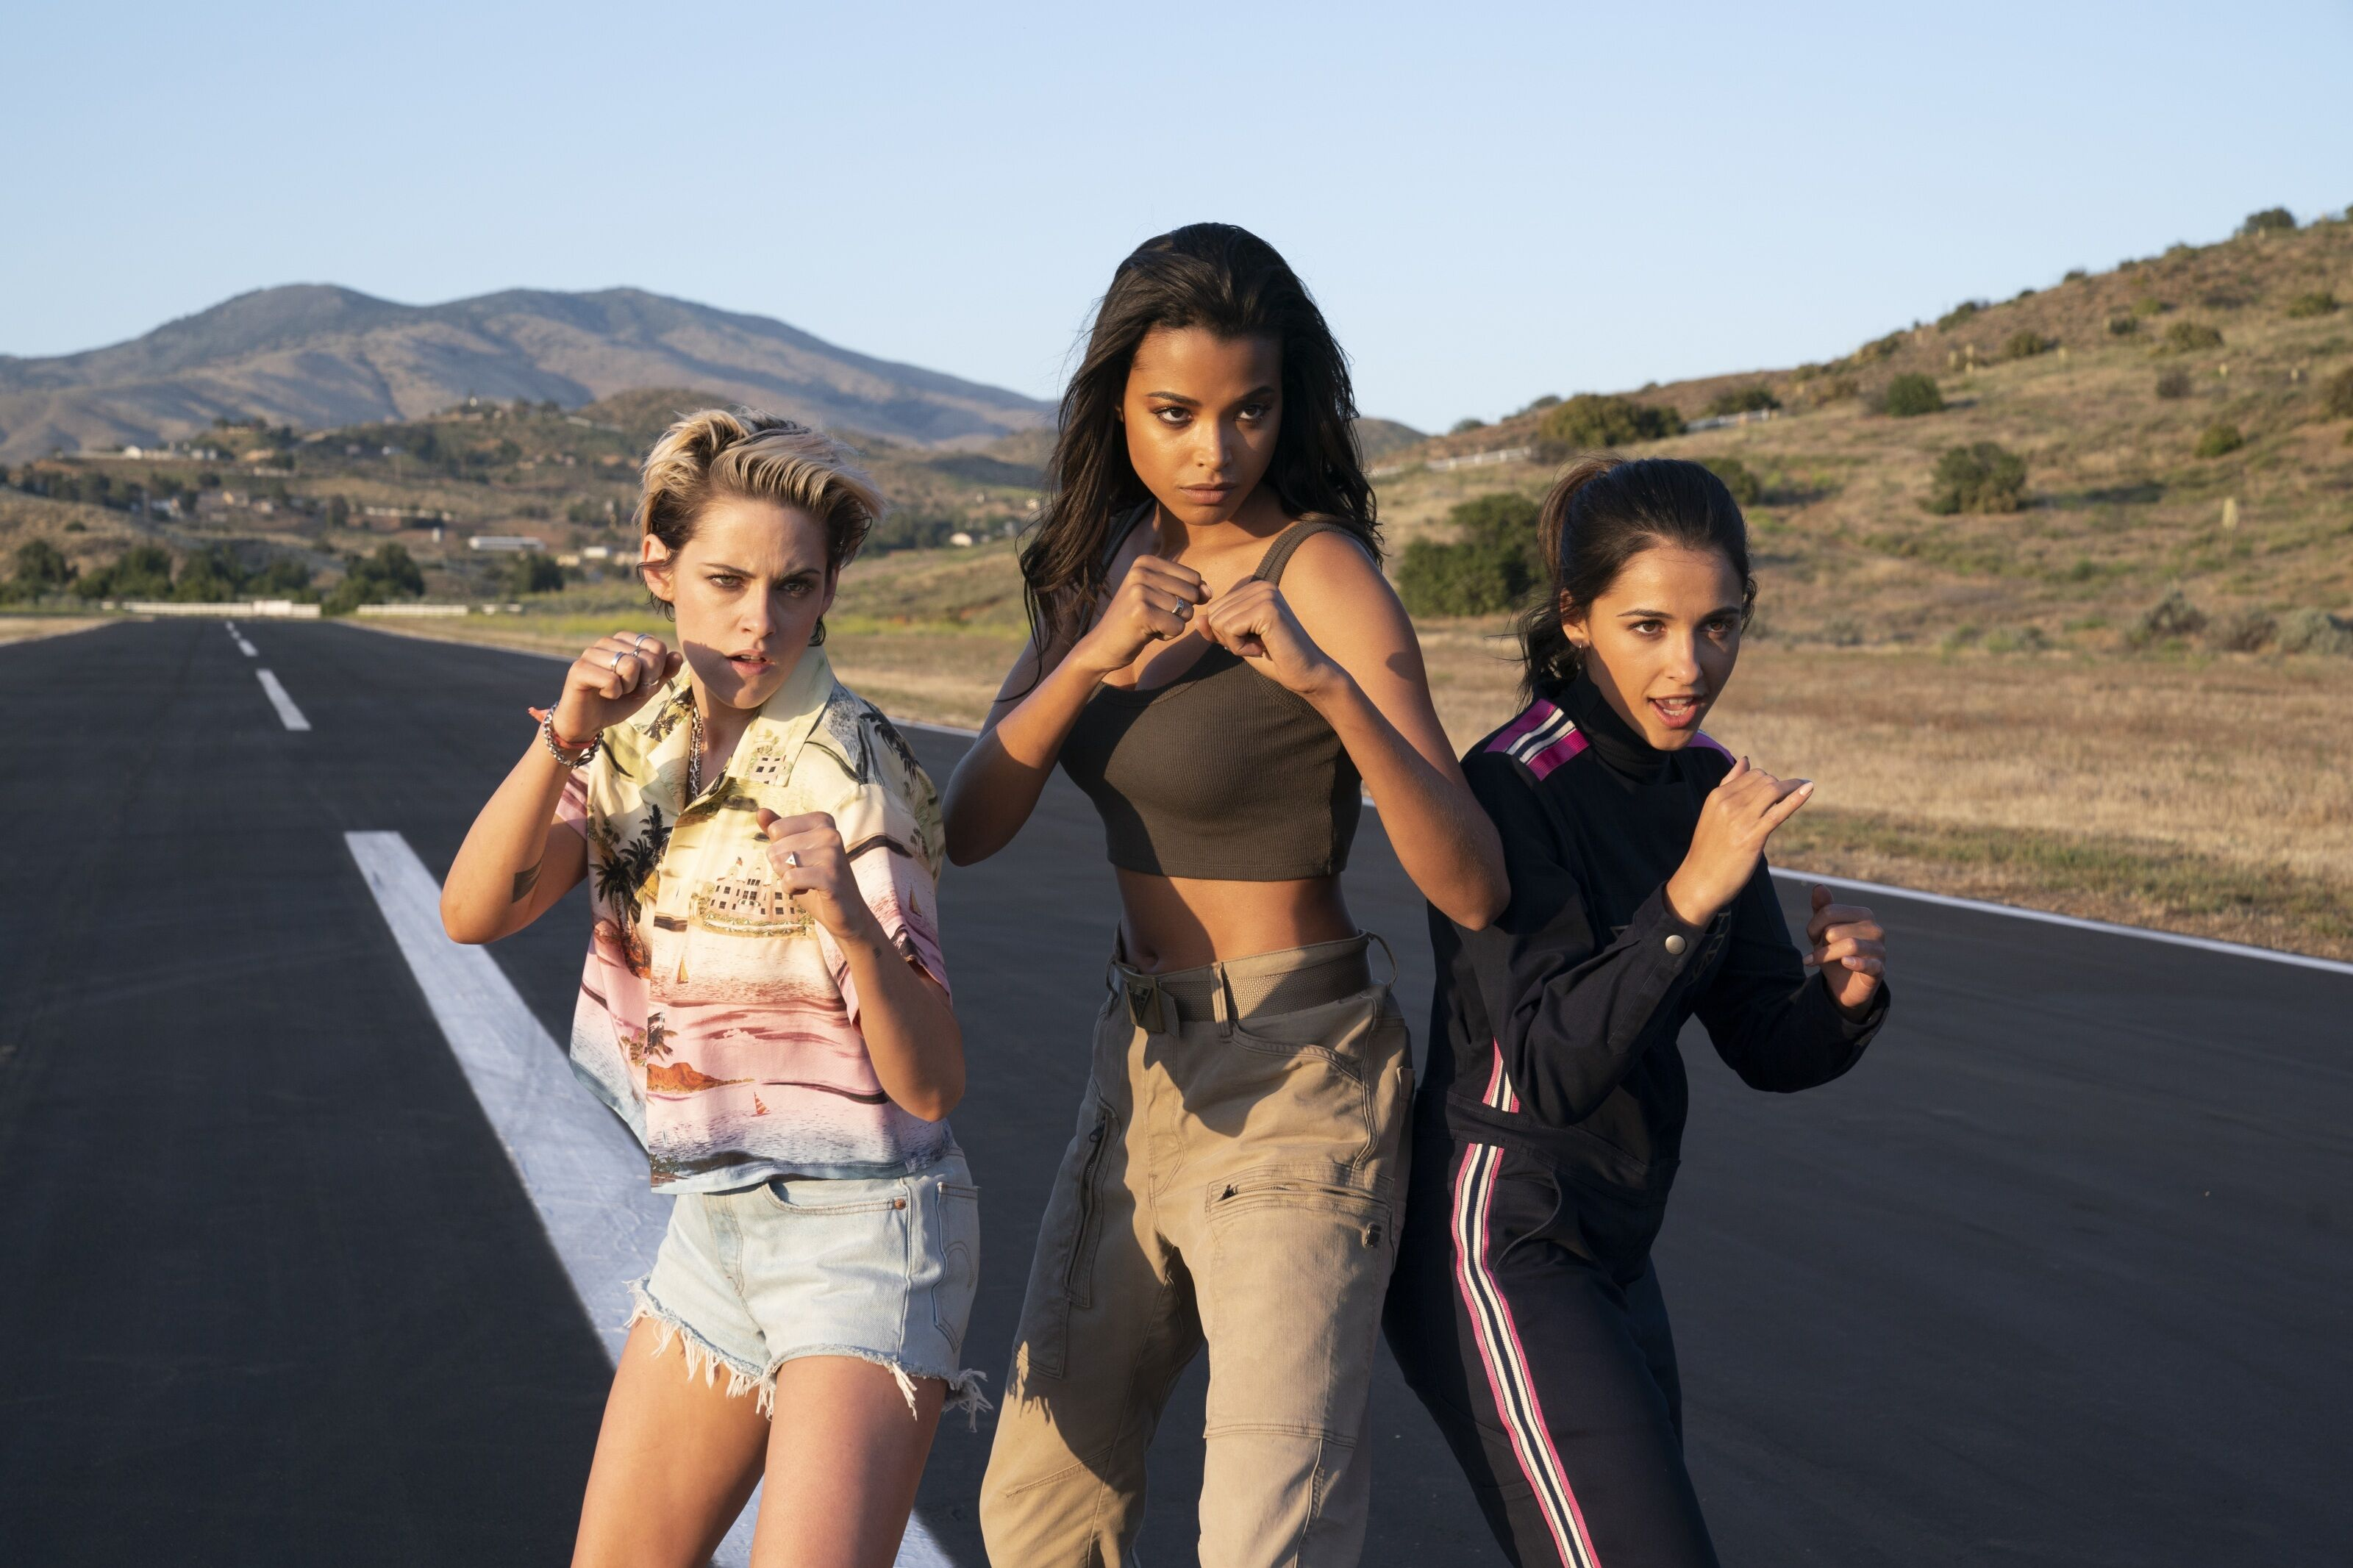 When will Charlie's Angels be available on DVD and Blu-ray?